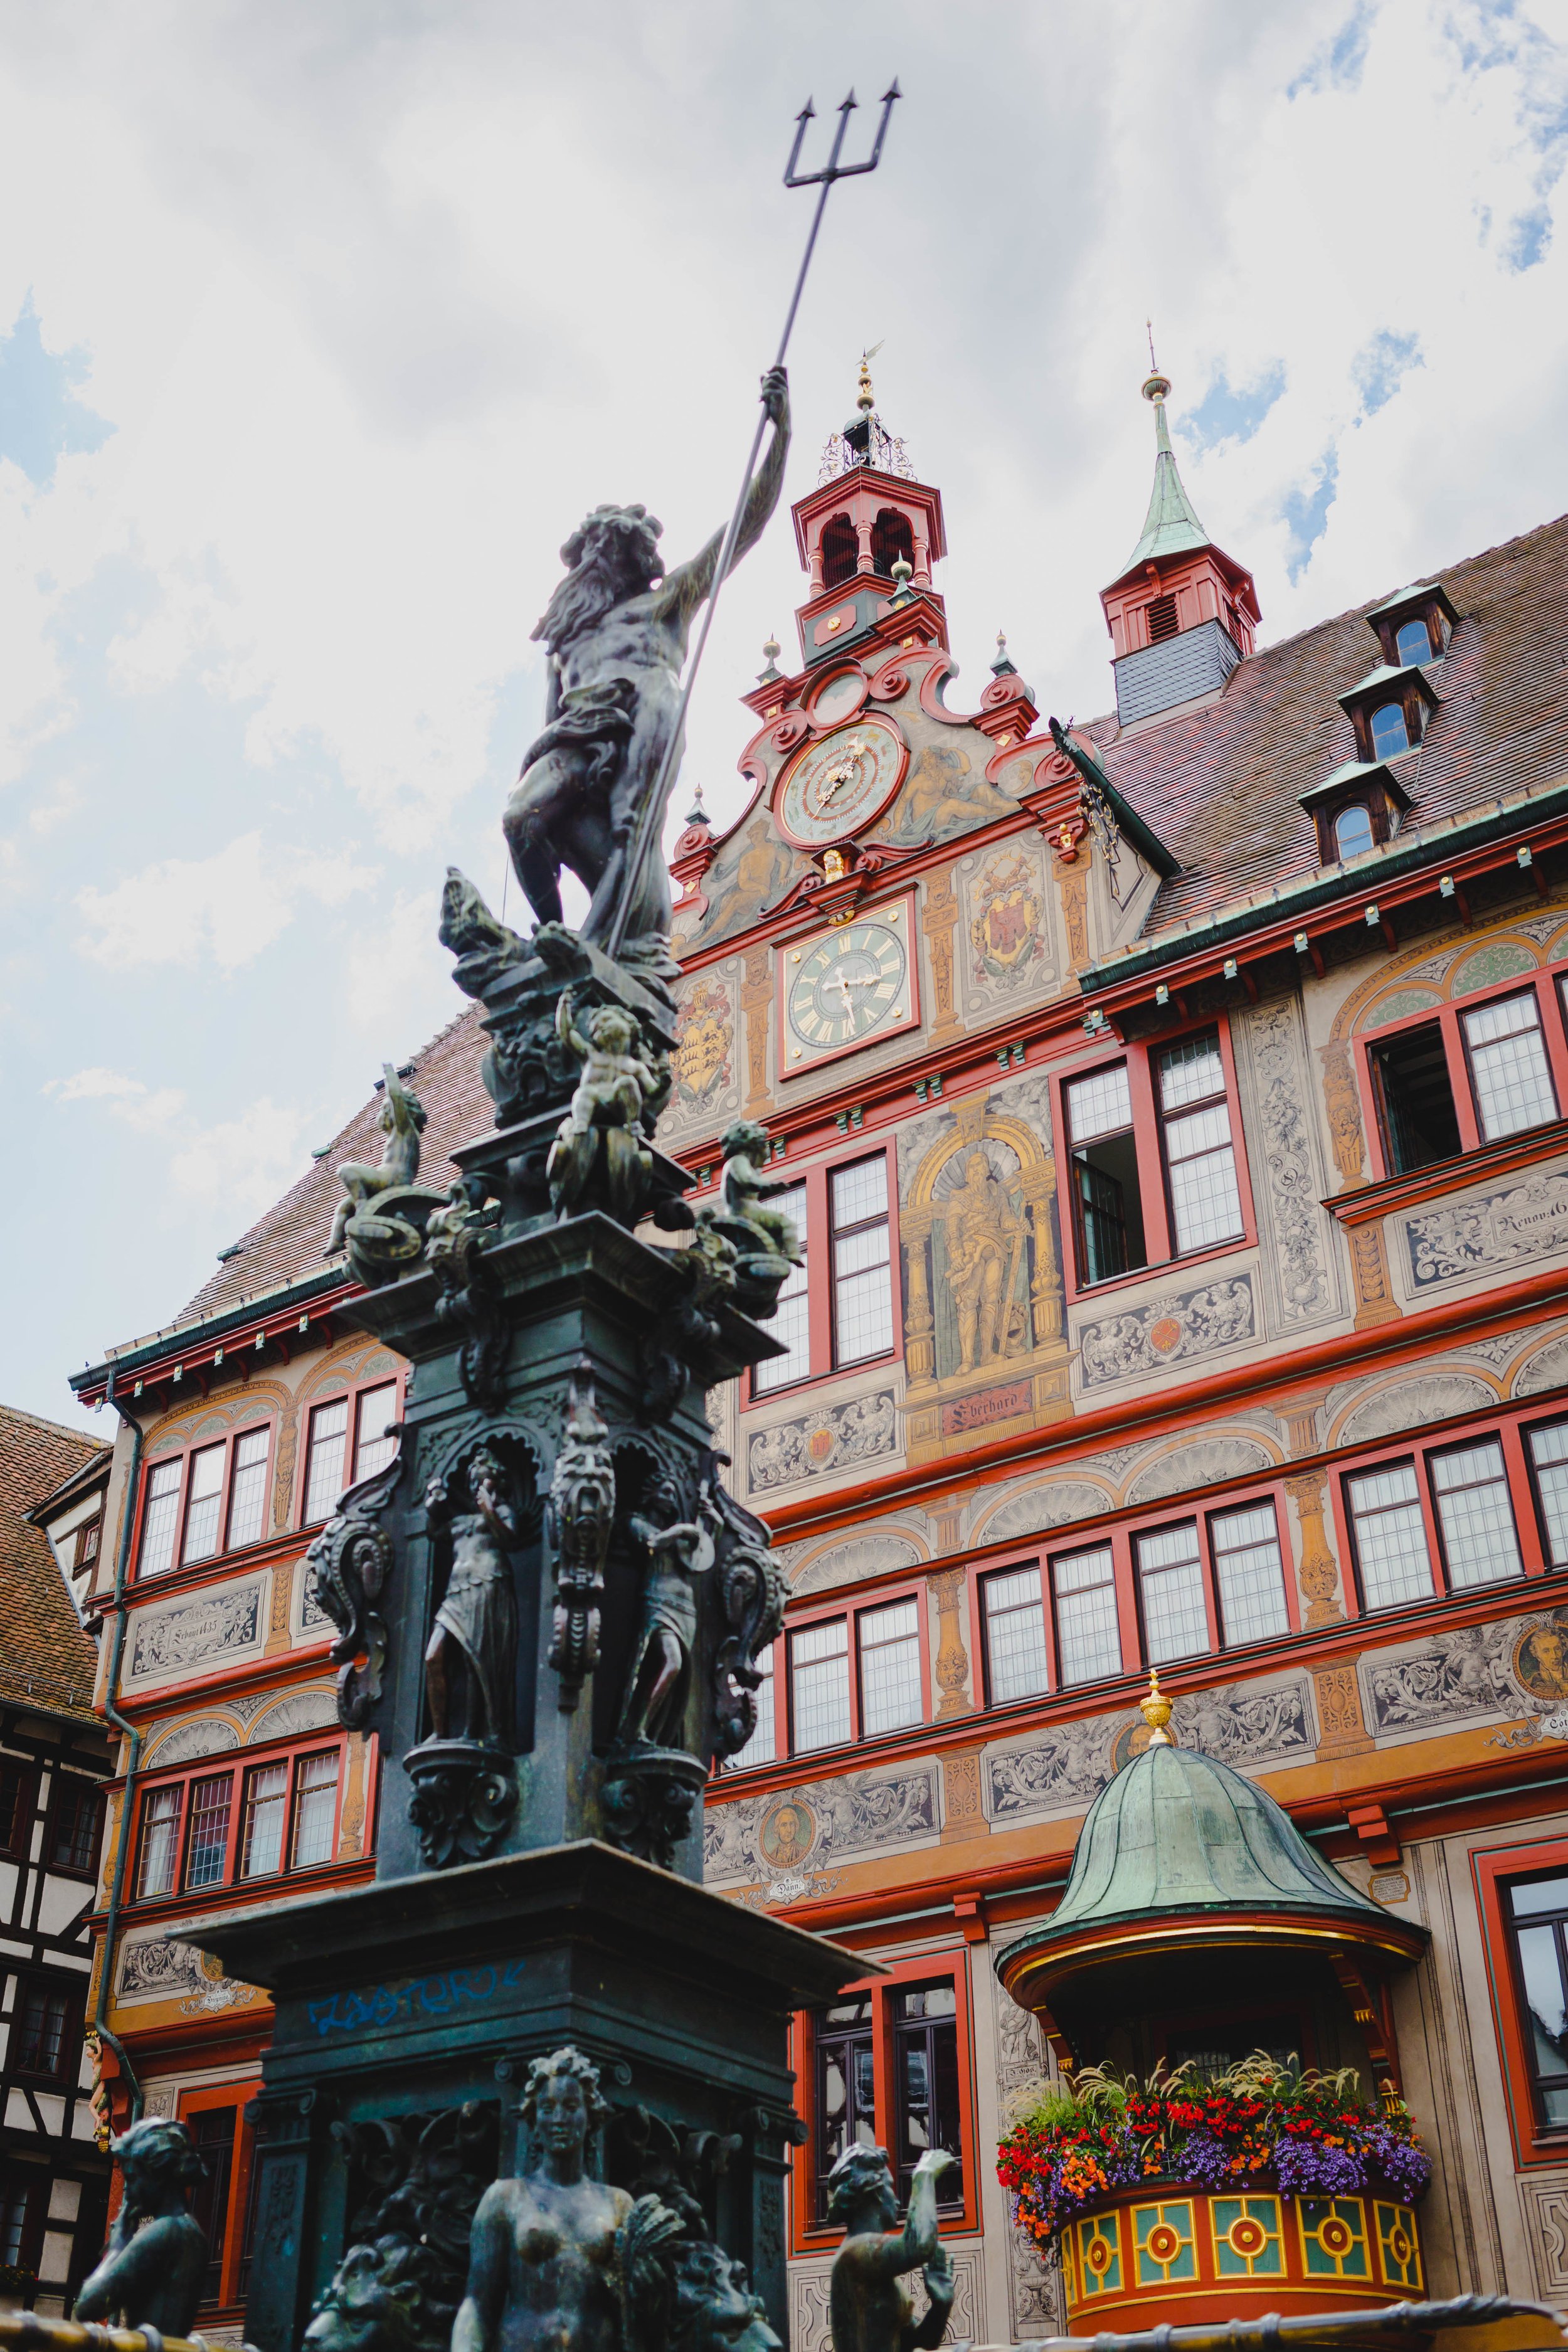 2. Town Hall - This majestic building is a masterpiece, located in the heart of the town square.